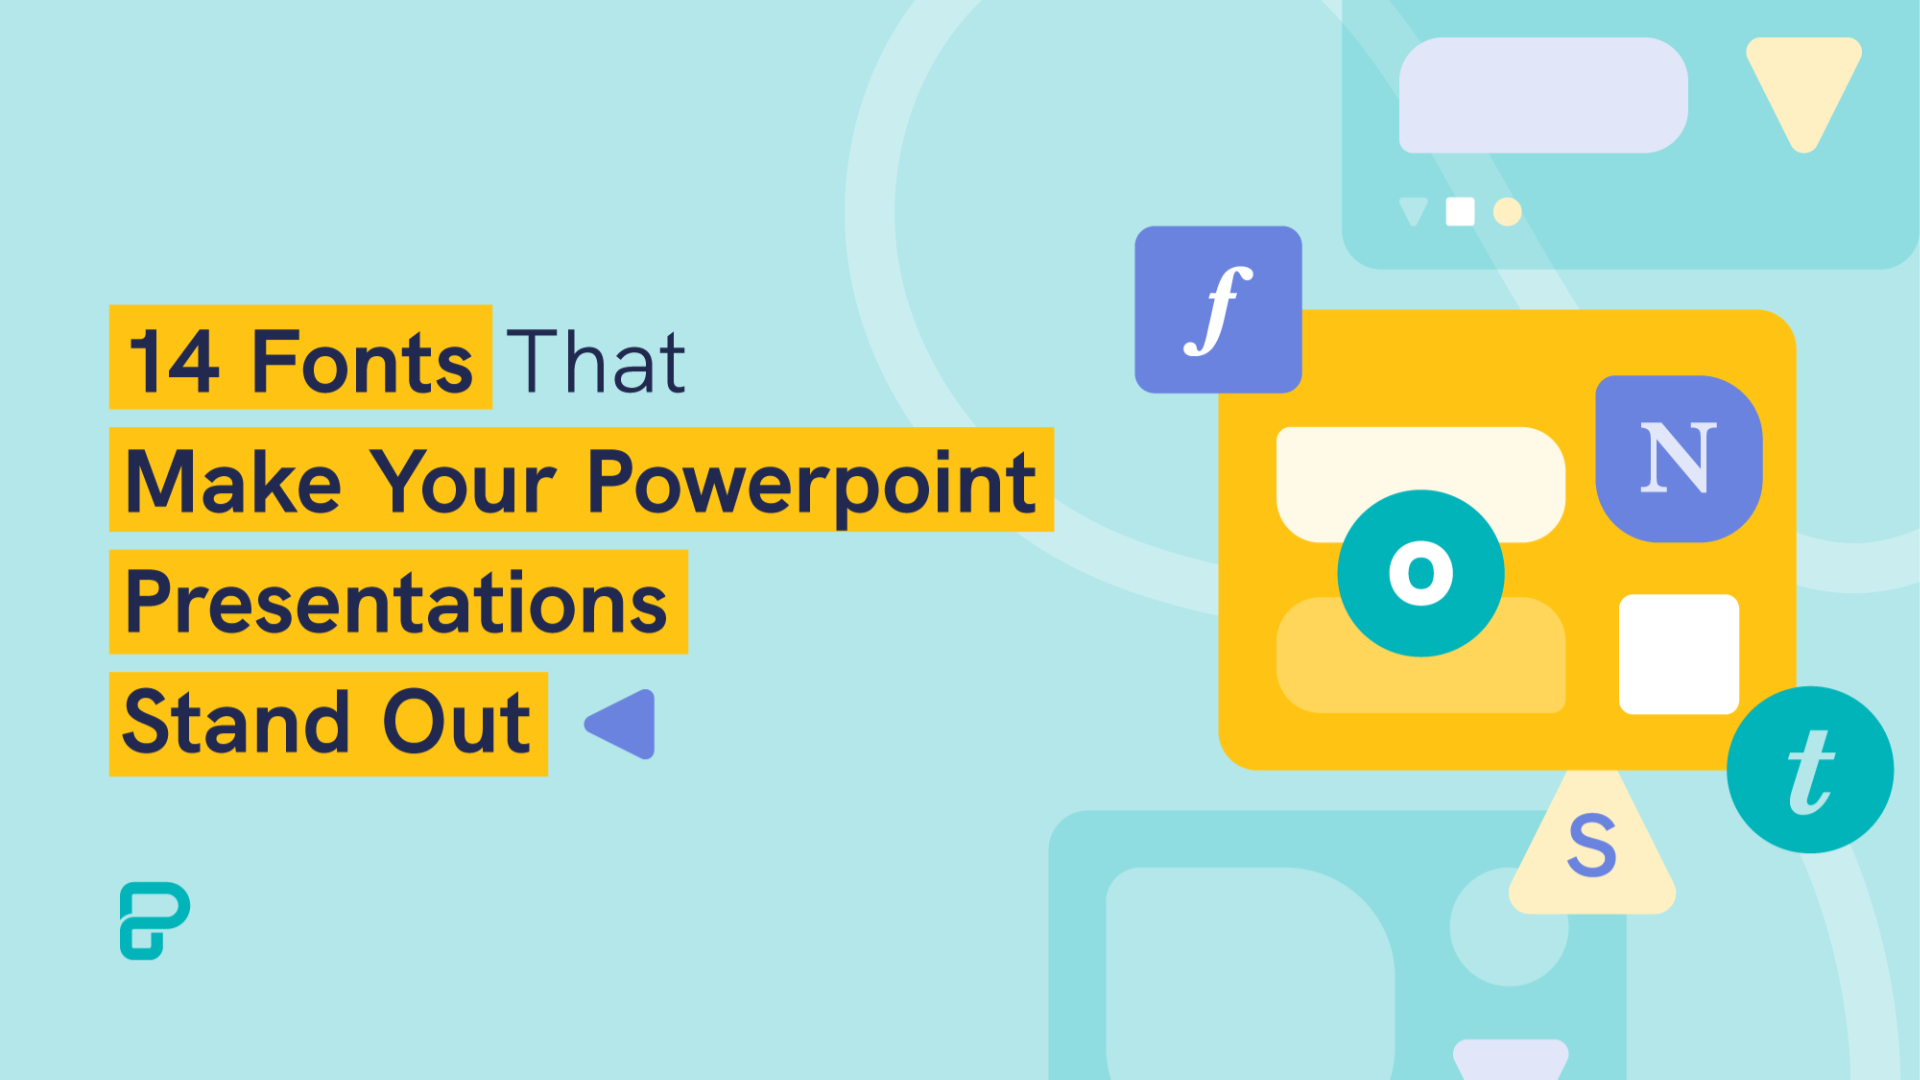 14 Fonts That Make Your Powerpoint Presentations Stand Out